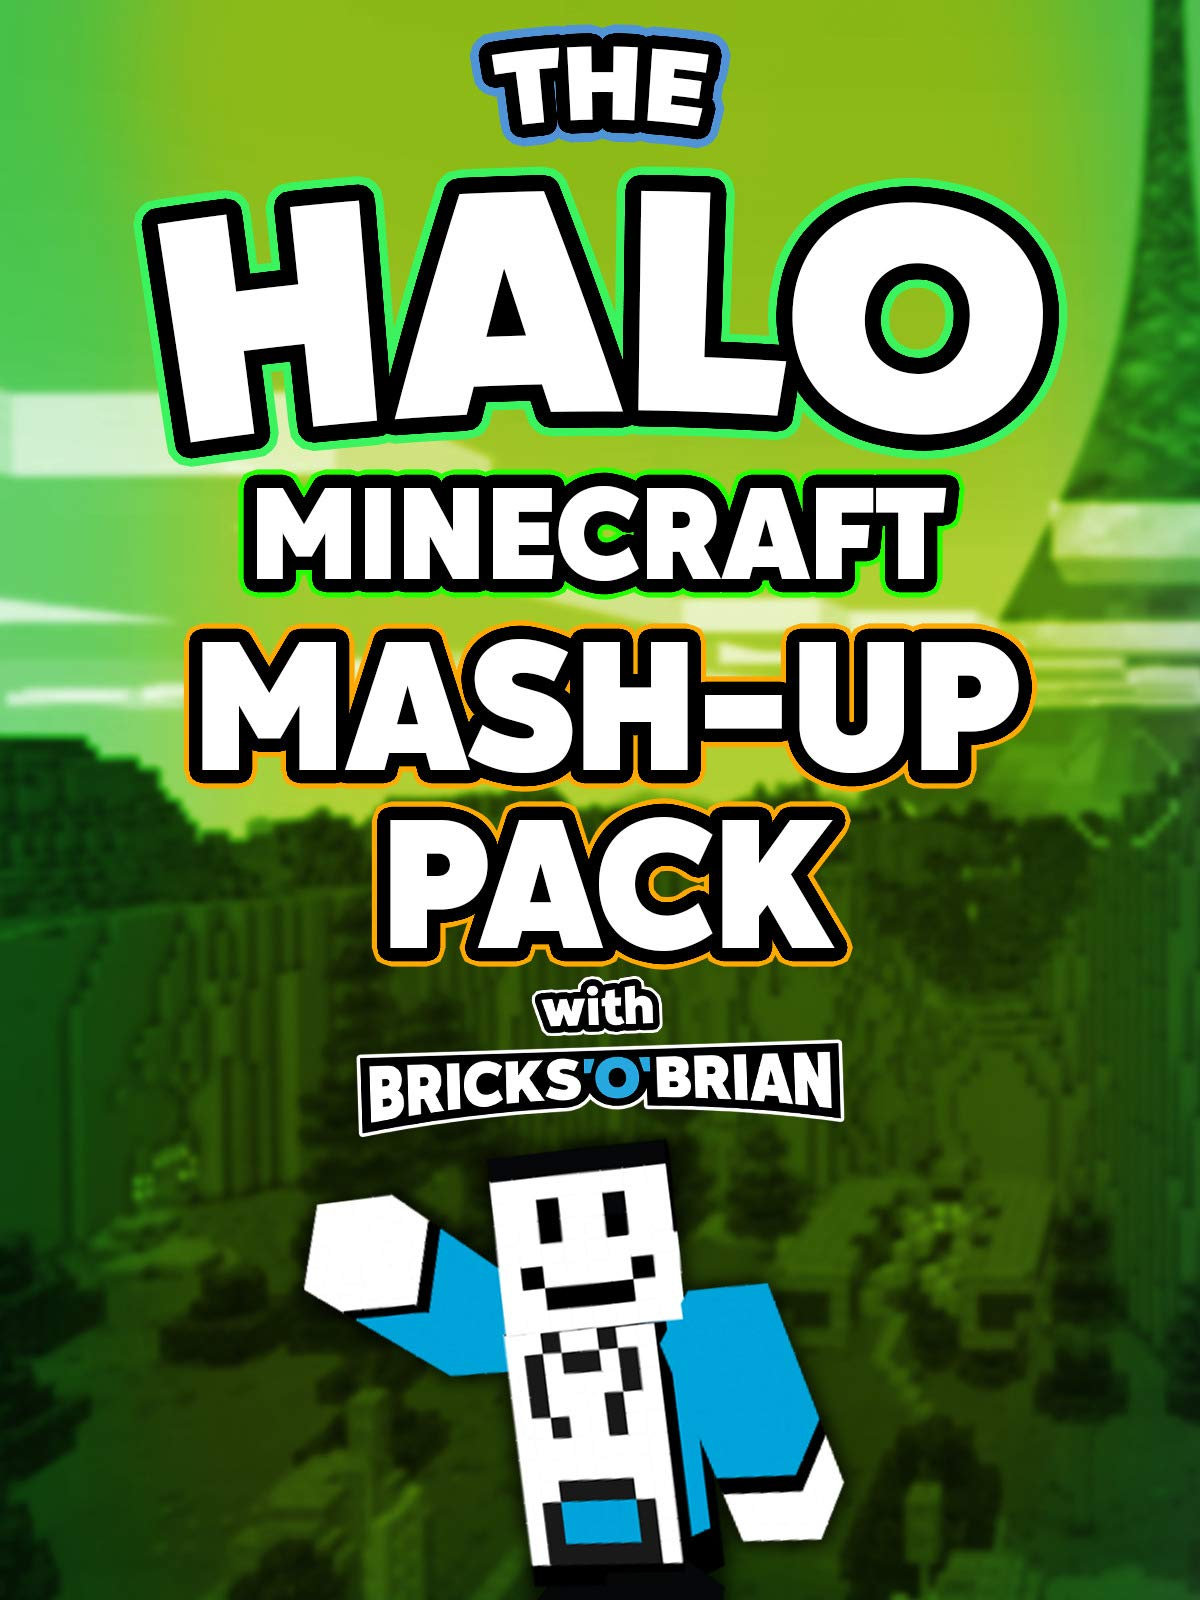 Clip: The Halo Minecraft Mash-Up Pack with Bricks 'O' Brian!